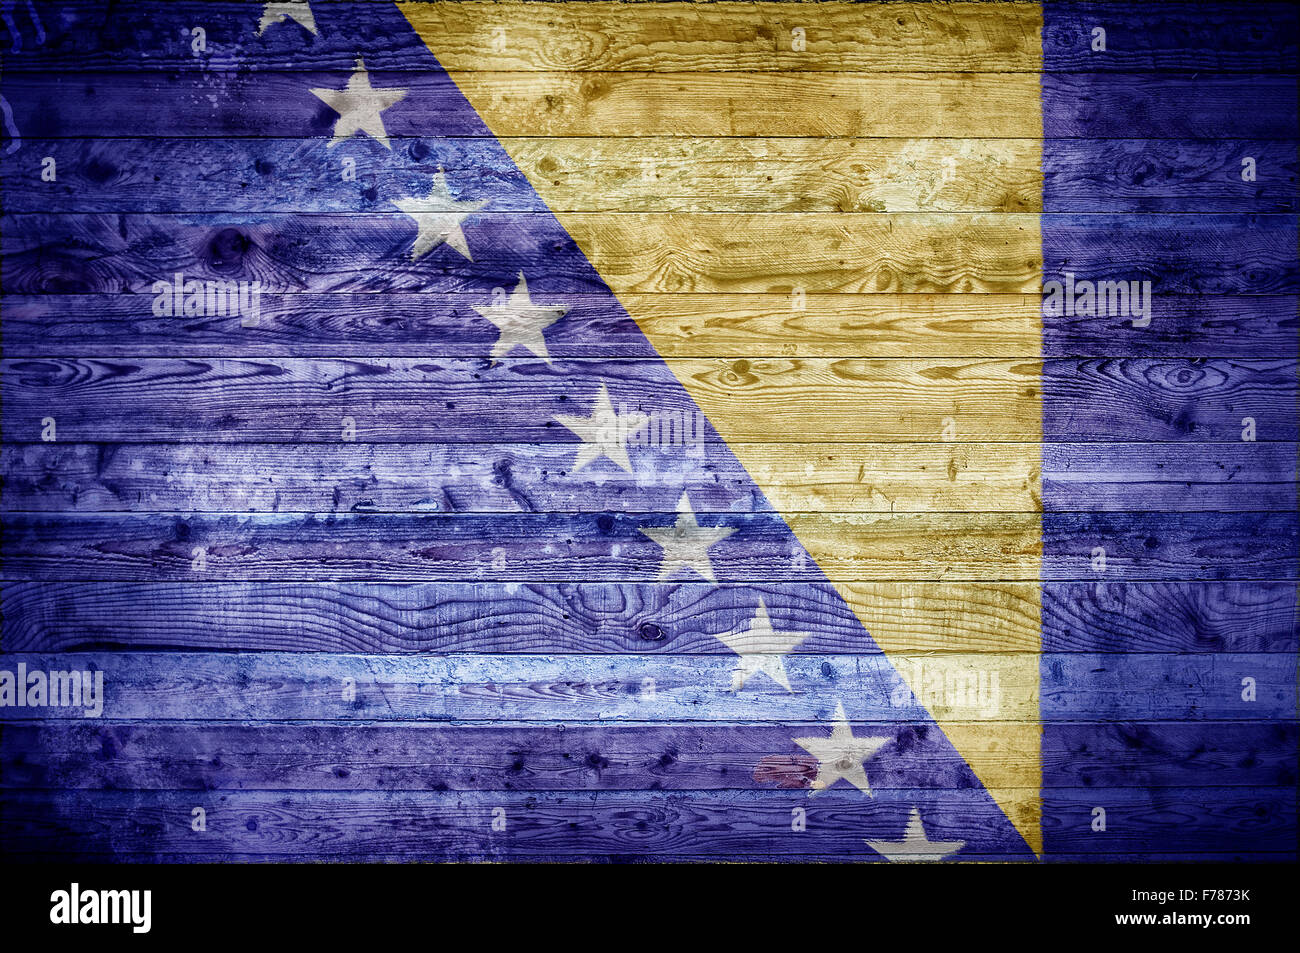 A vignetted background image of the flag of Bosnia and Herzegovina painted onto wooden boards of a wall or floor. - Stock Image